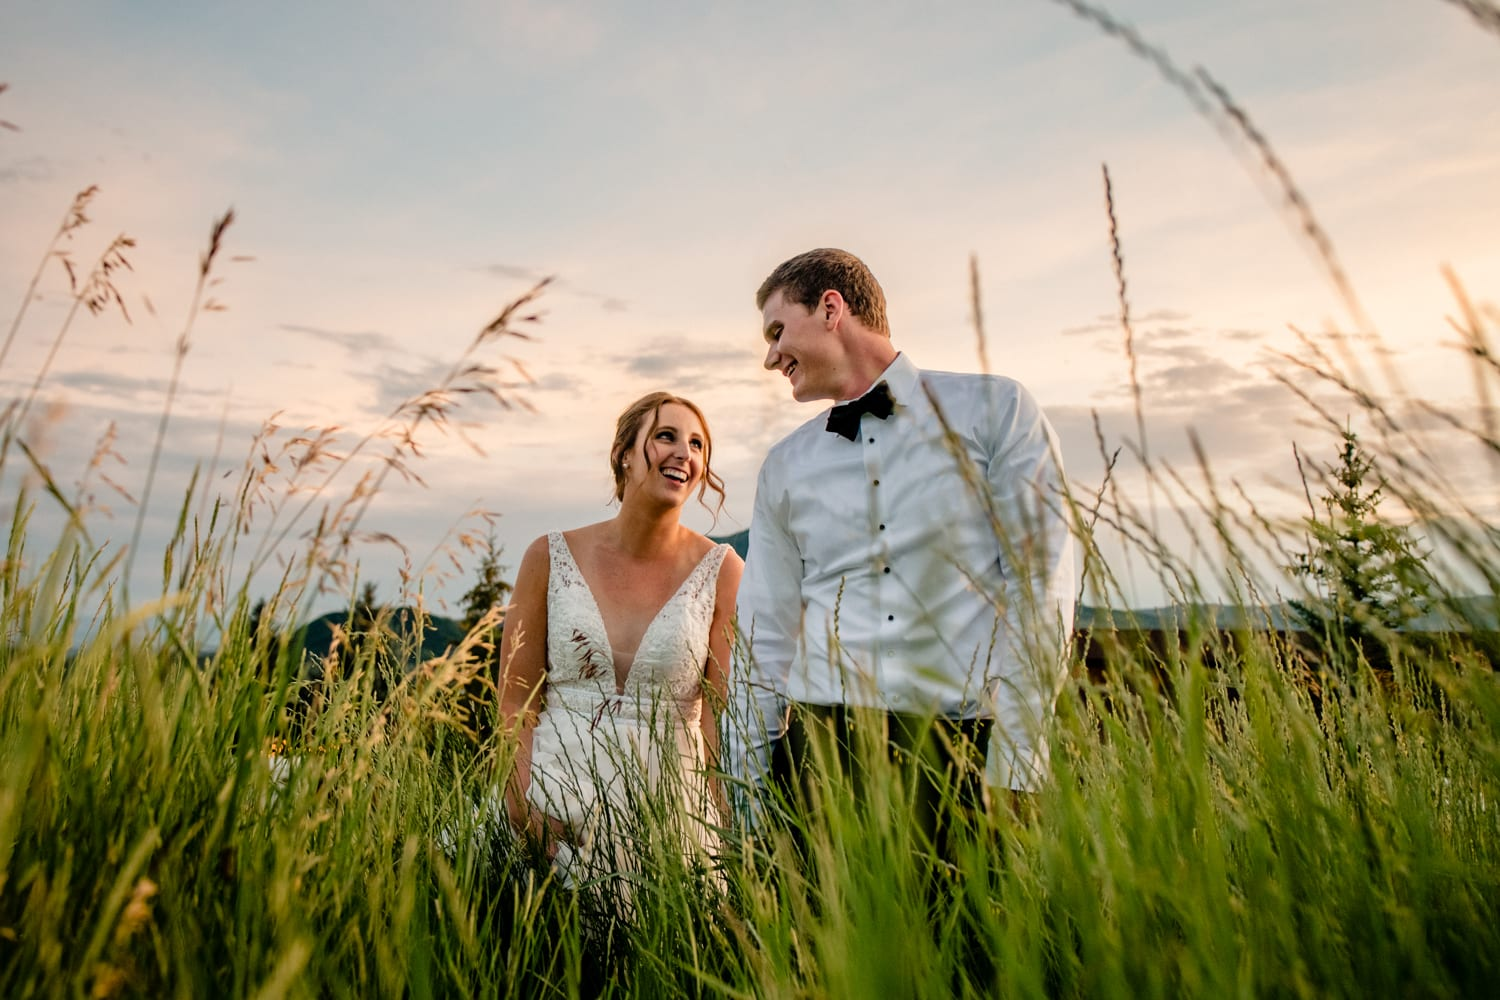 Couple Walk In Field During Sunset Wedding Photo Session